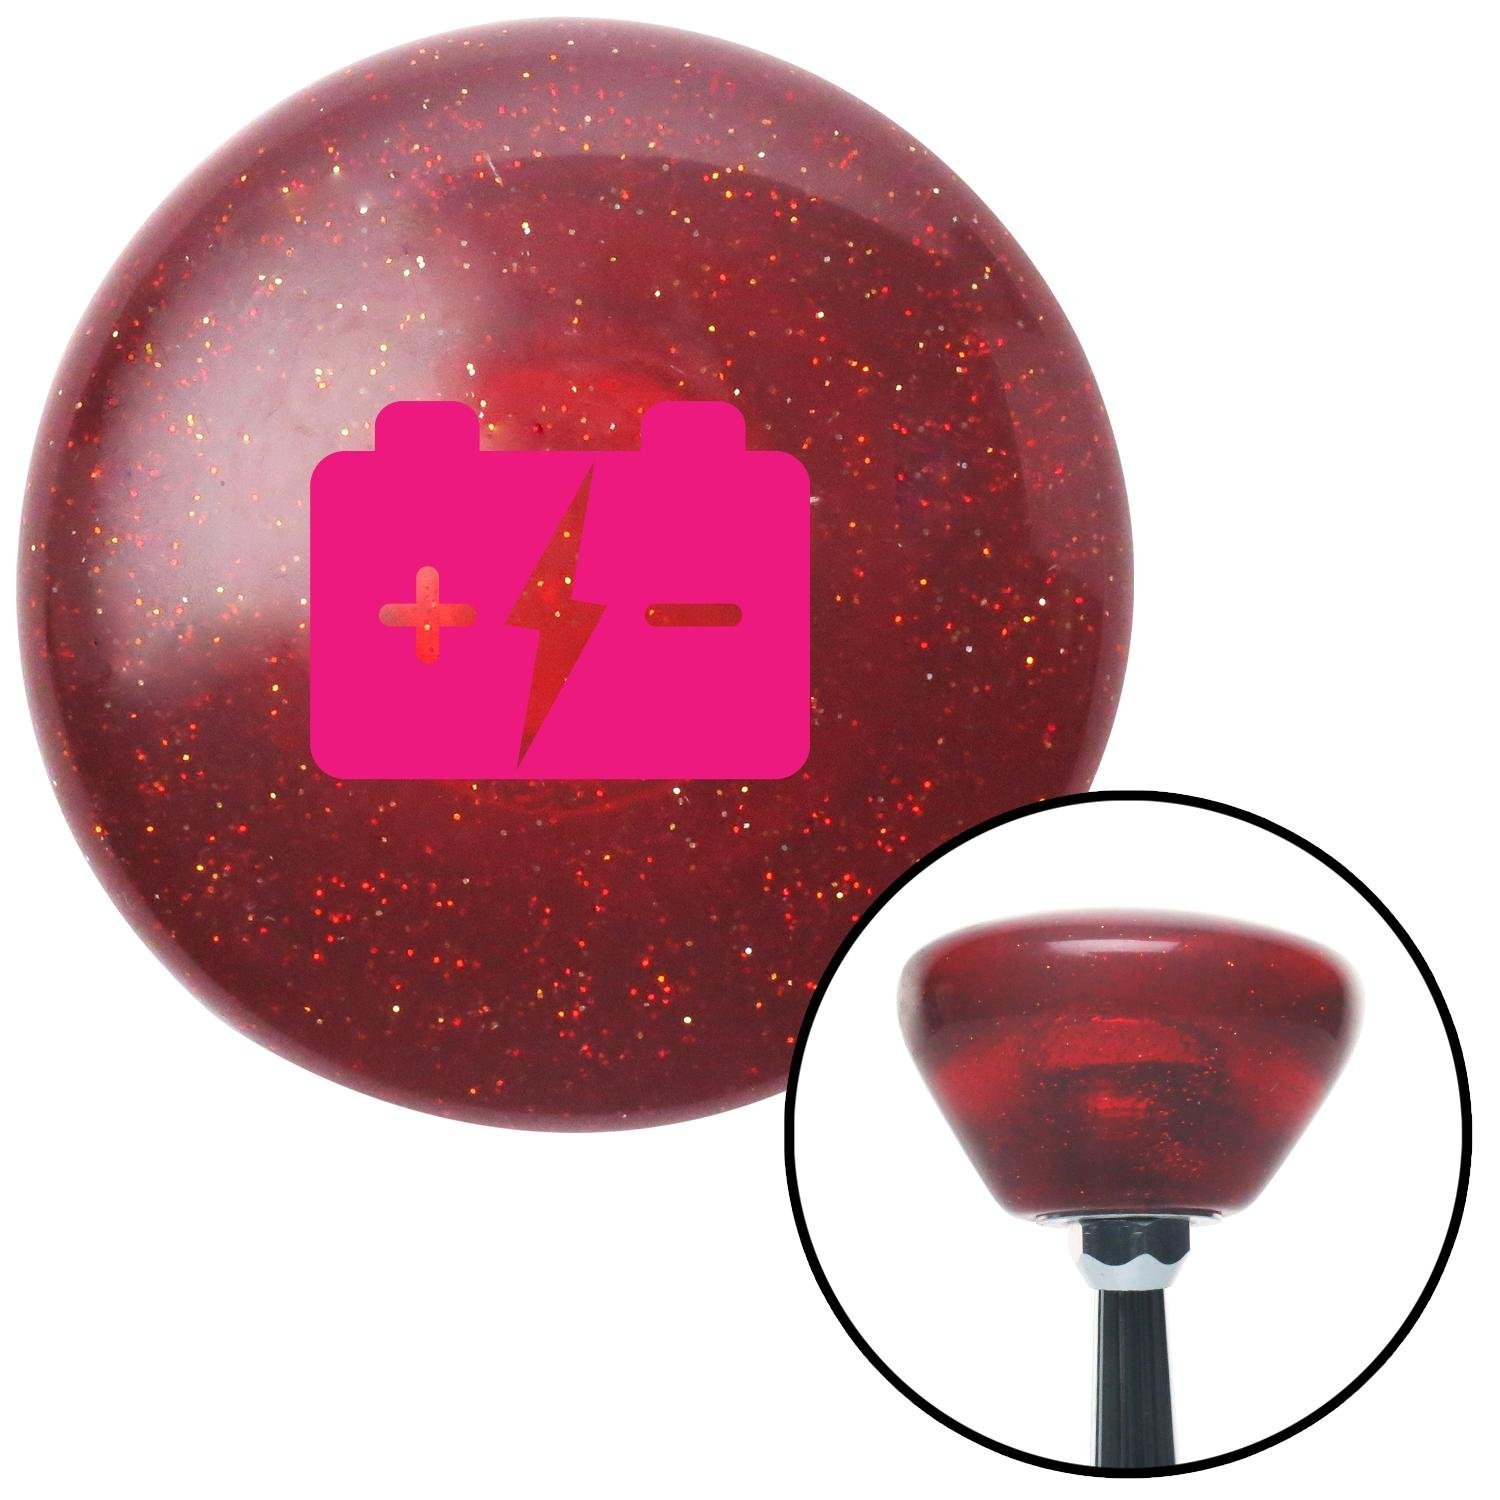 Pink Battery Charge Symbol American Shifter 193495 Red Retro Metal Flake Shift Knob with M16 x 1.5 Insert